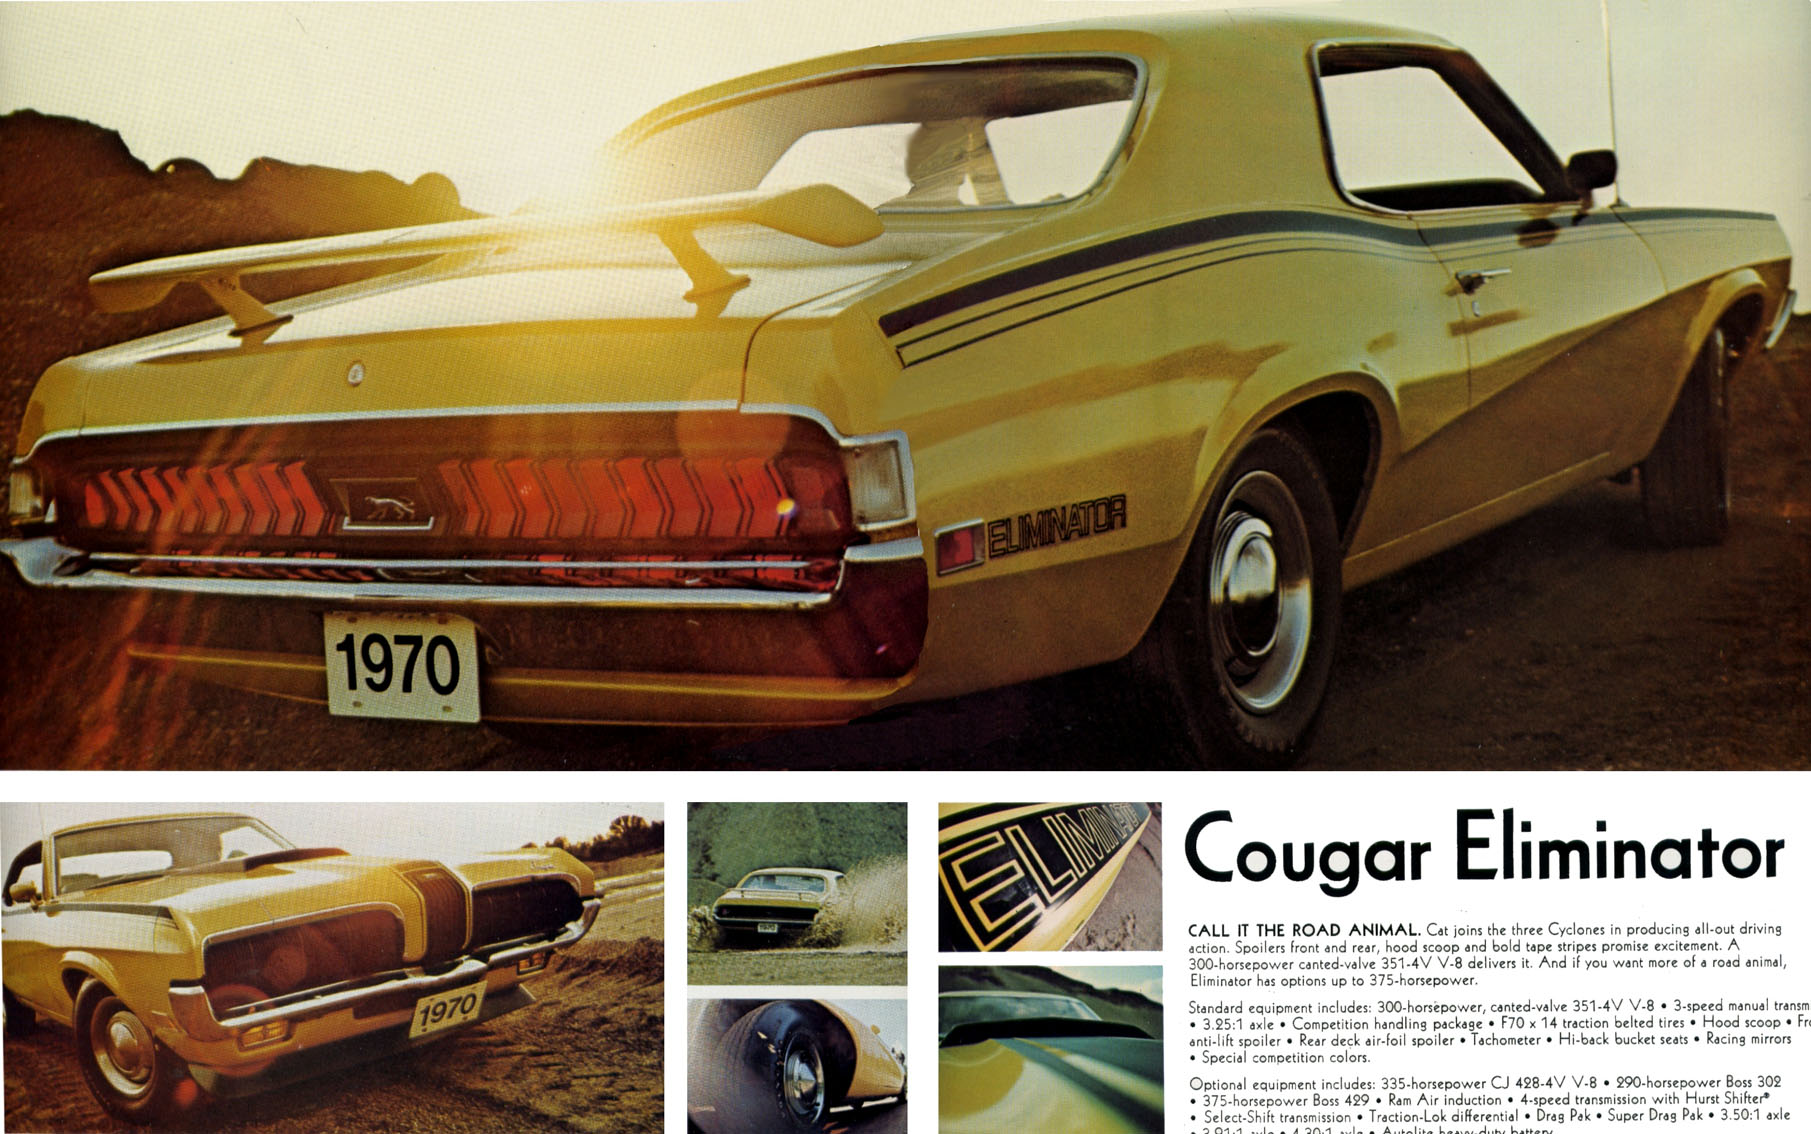 1970 Cougar Eliminator - call it the road animal...